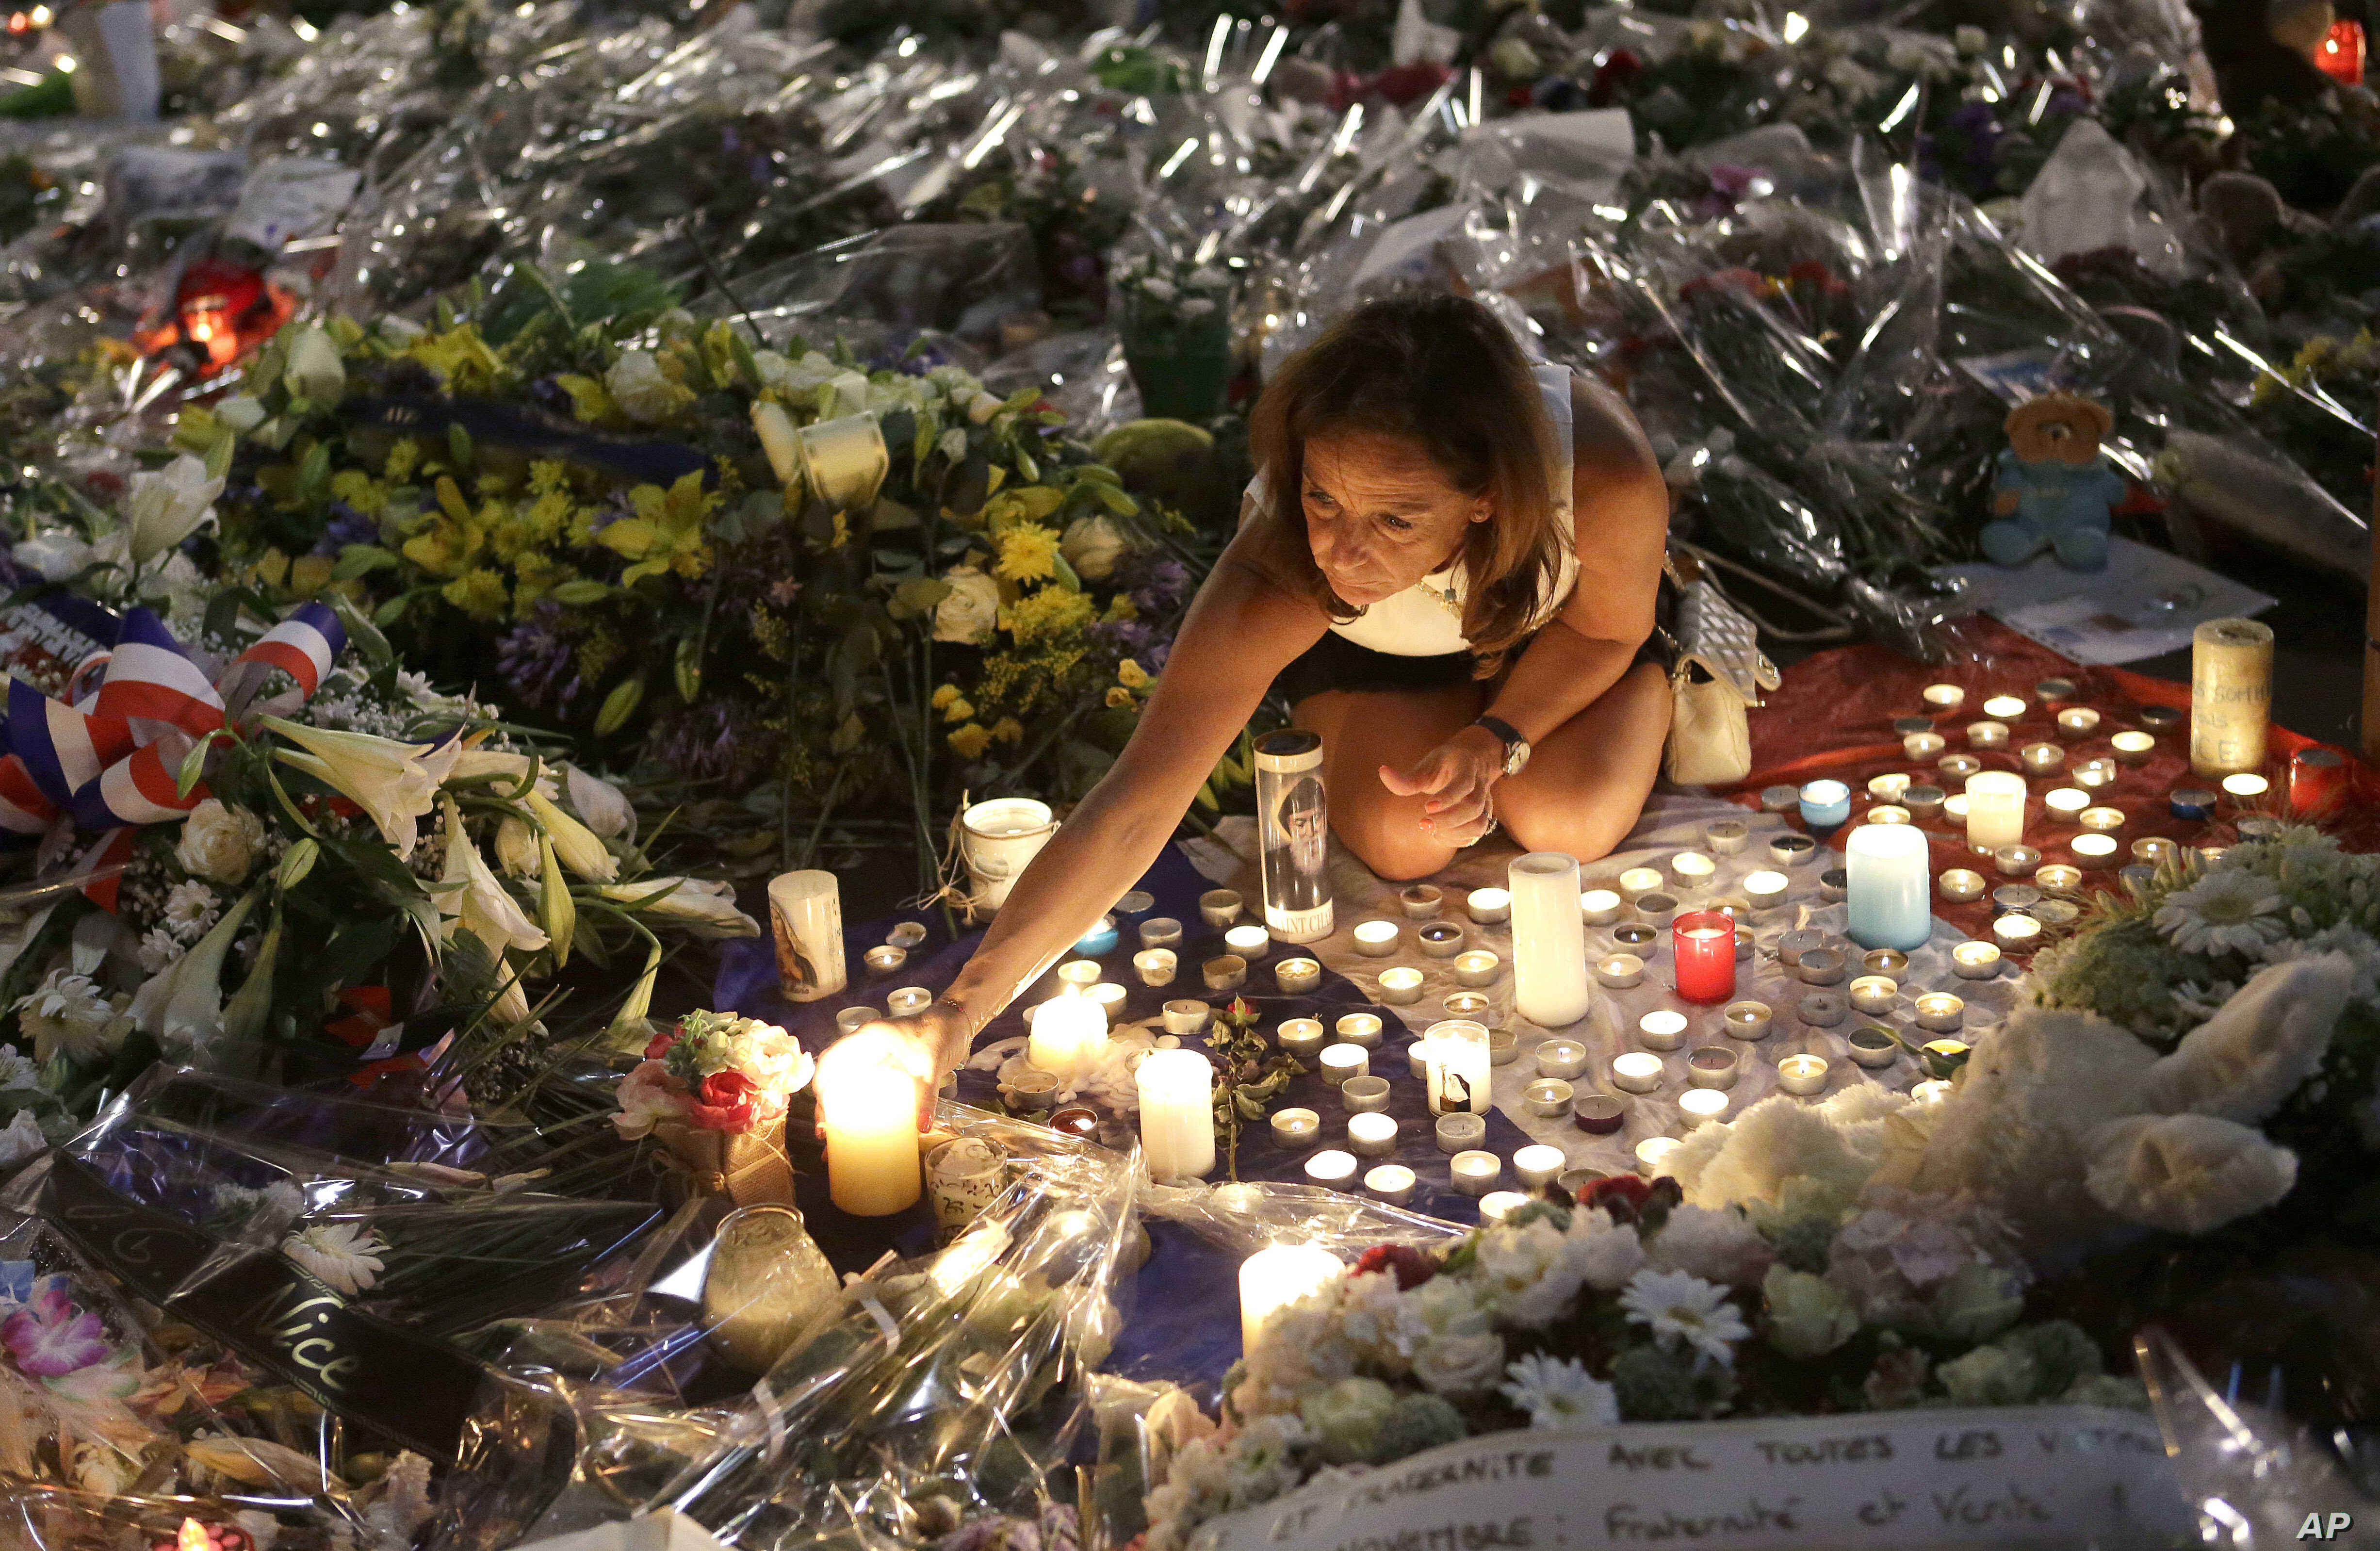 A woman lights candles at a new memorial in a gazebo in a seaside park on the famed Promenade des Anglais in Nice, southern France, July 18, 2016.